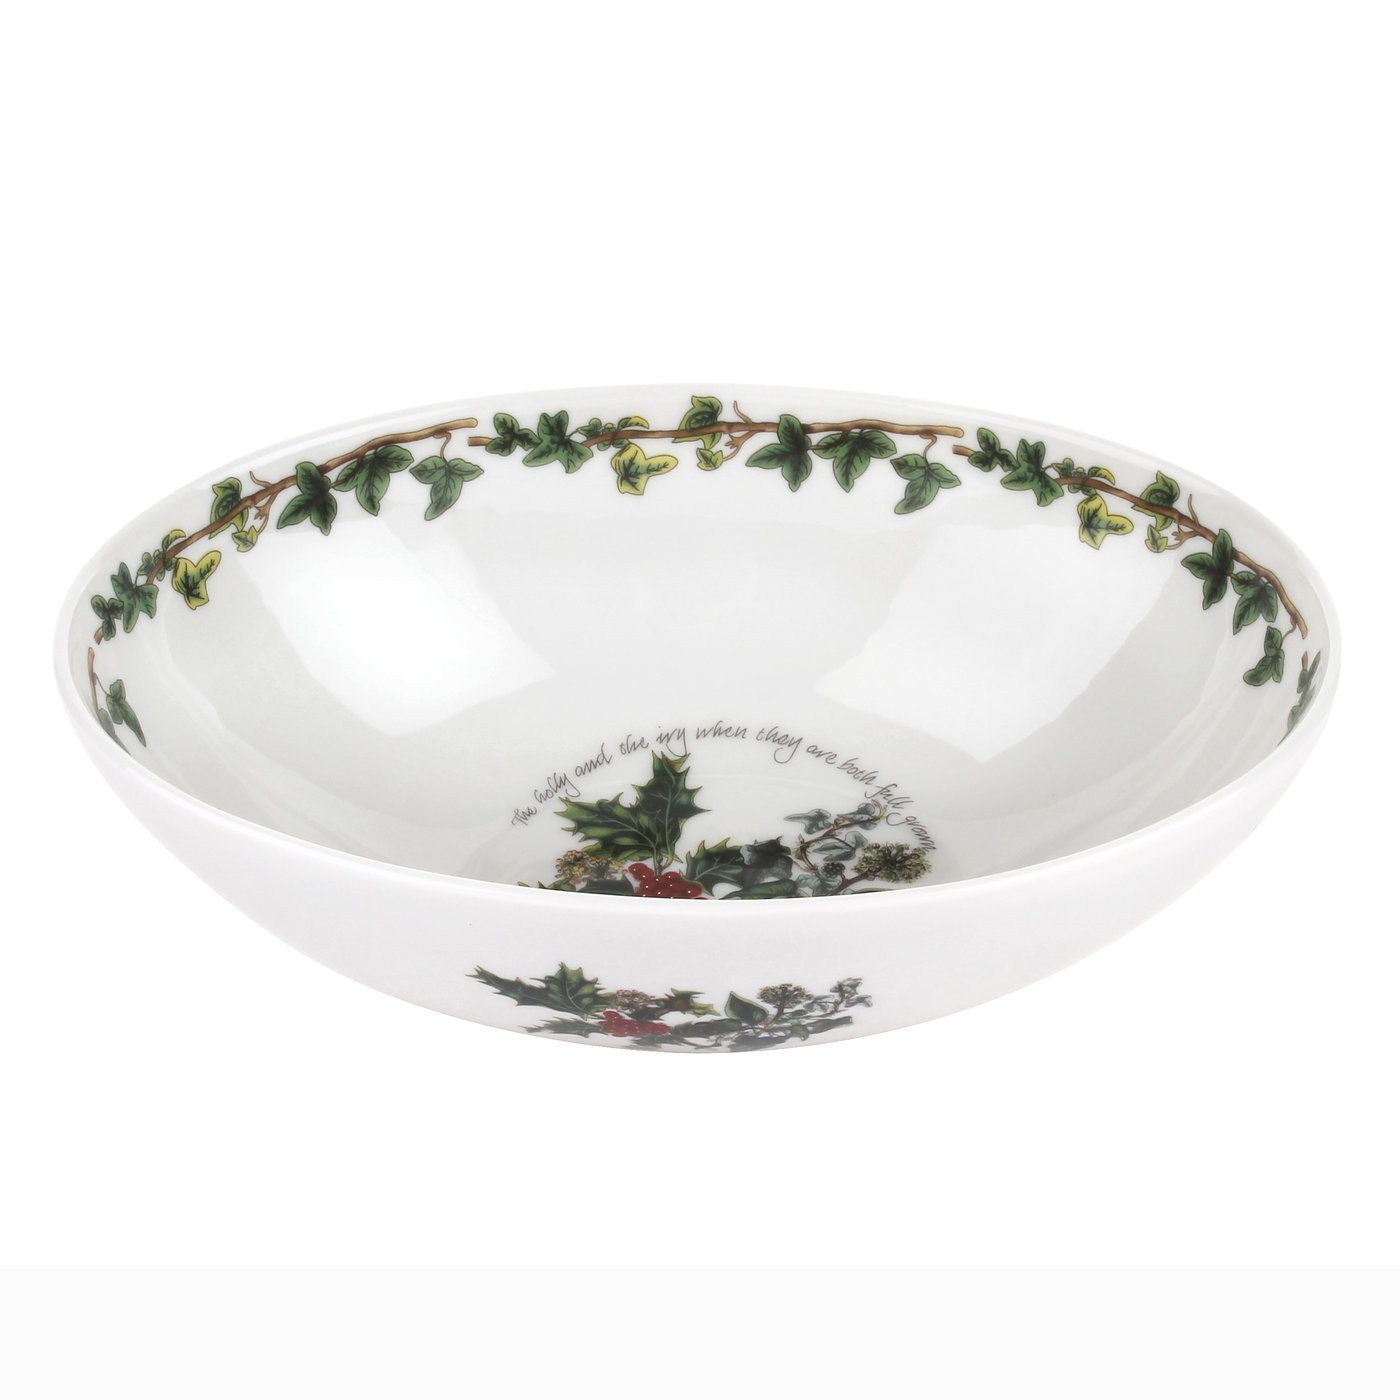 Portmeirion The Holly and the Ivy Oval Nesting Bowl 9 Inch